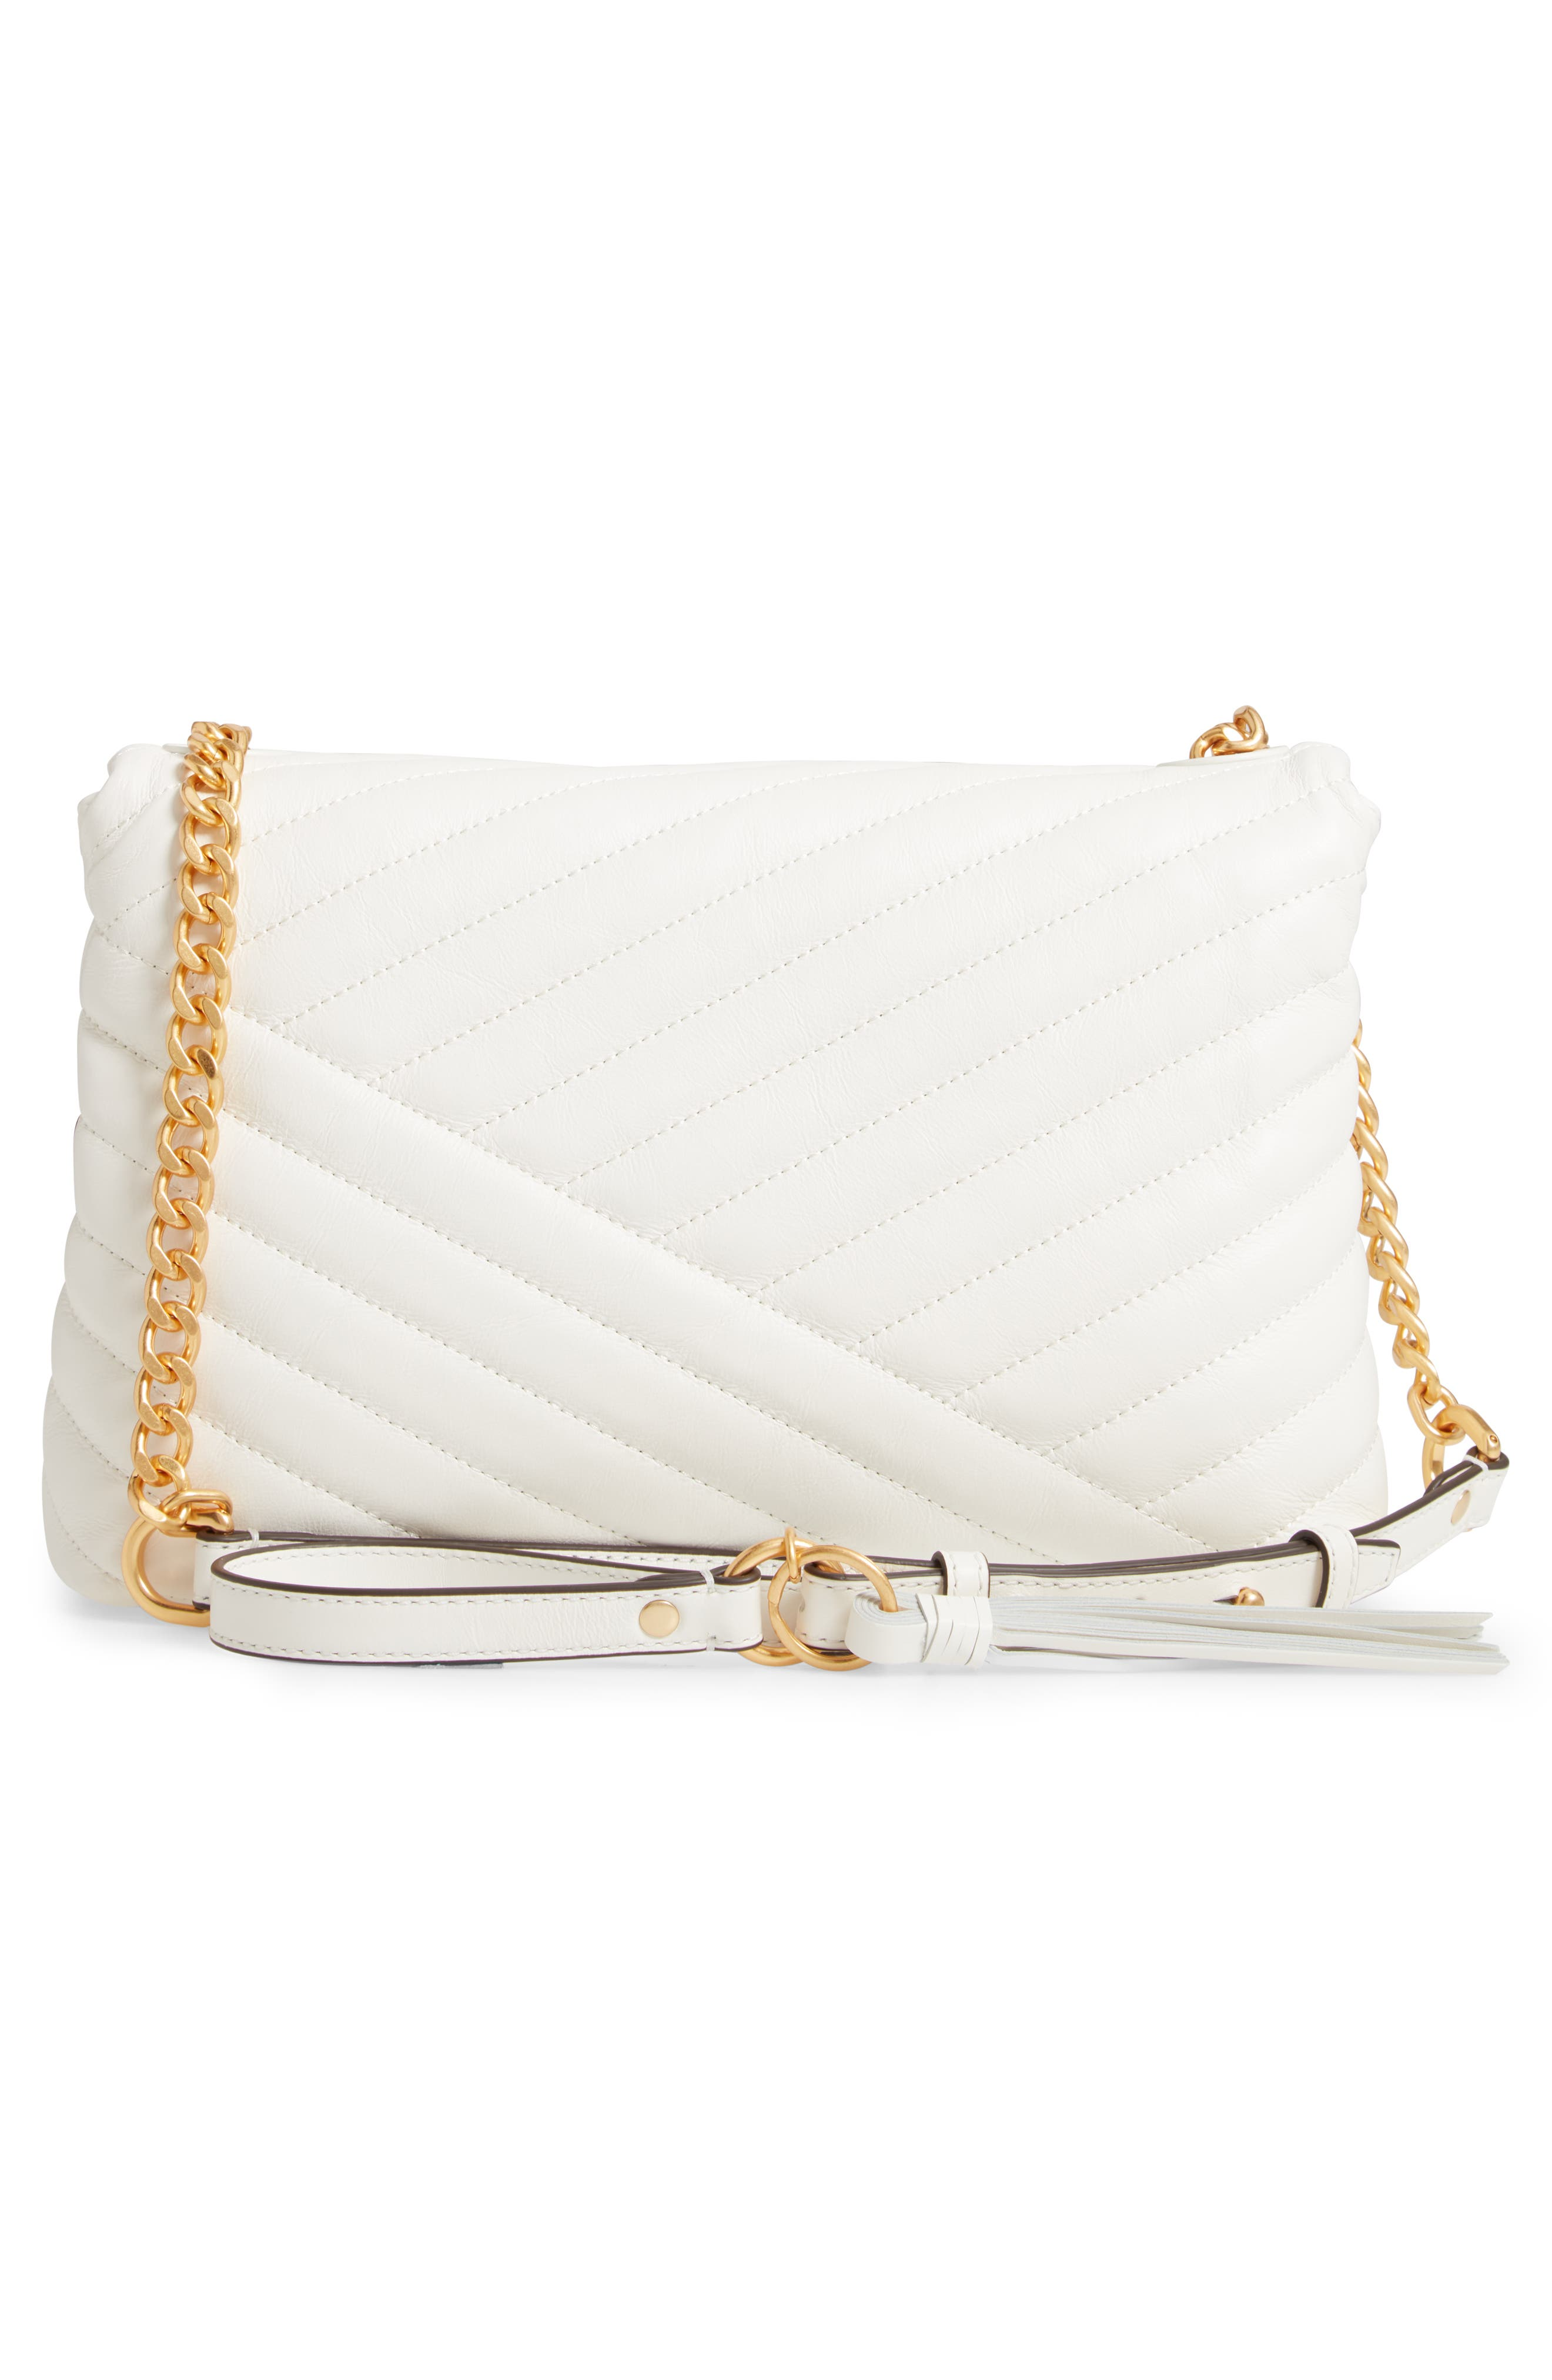 TORY BURCH, Kira Chevron Quilted Leather Shoulder Bag, Alternate thumbnail 4, color, NEW IVORY